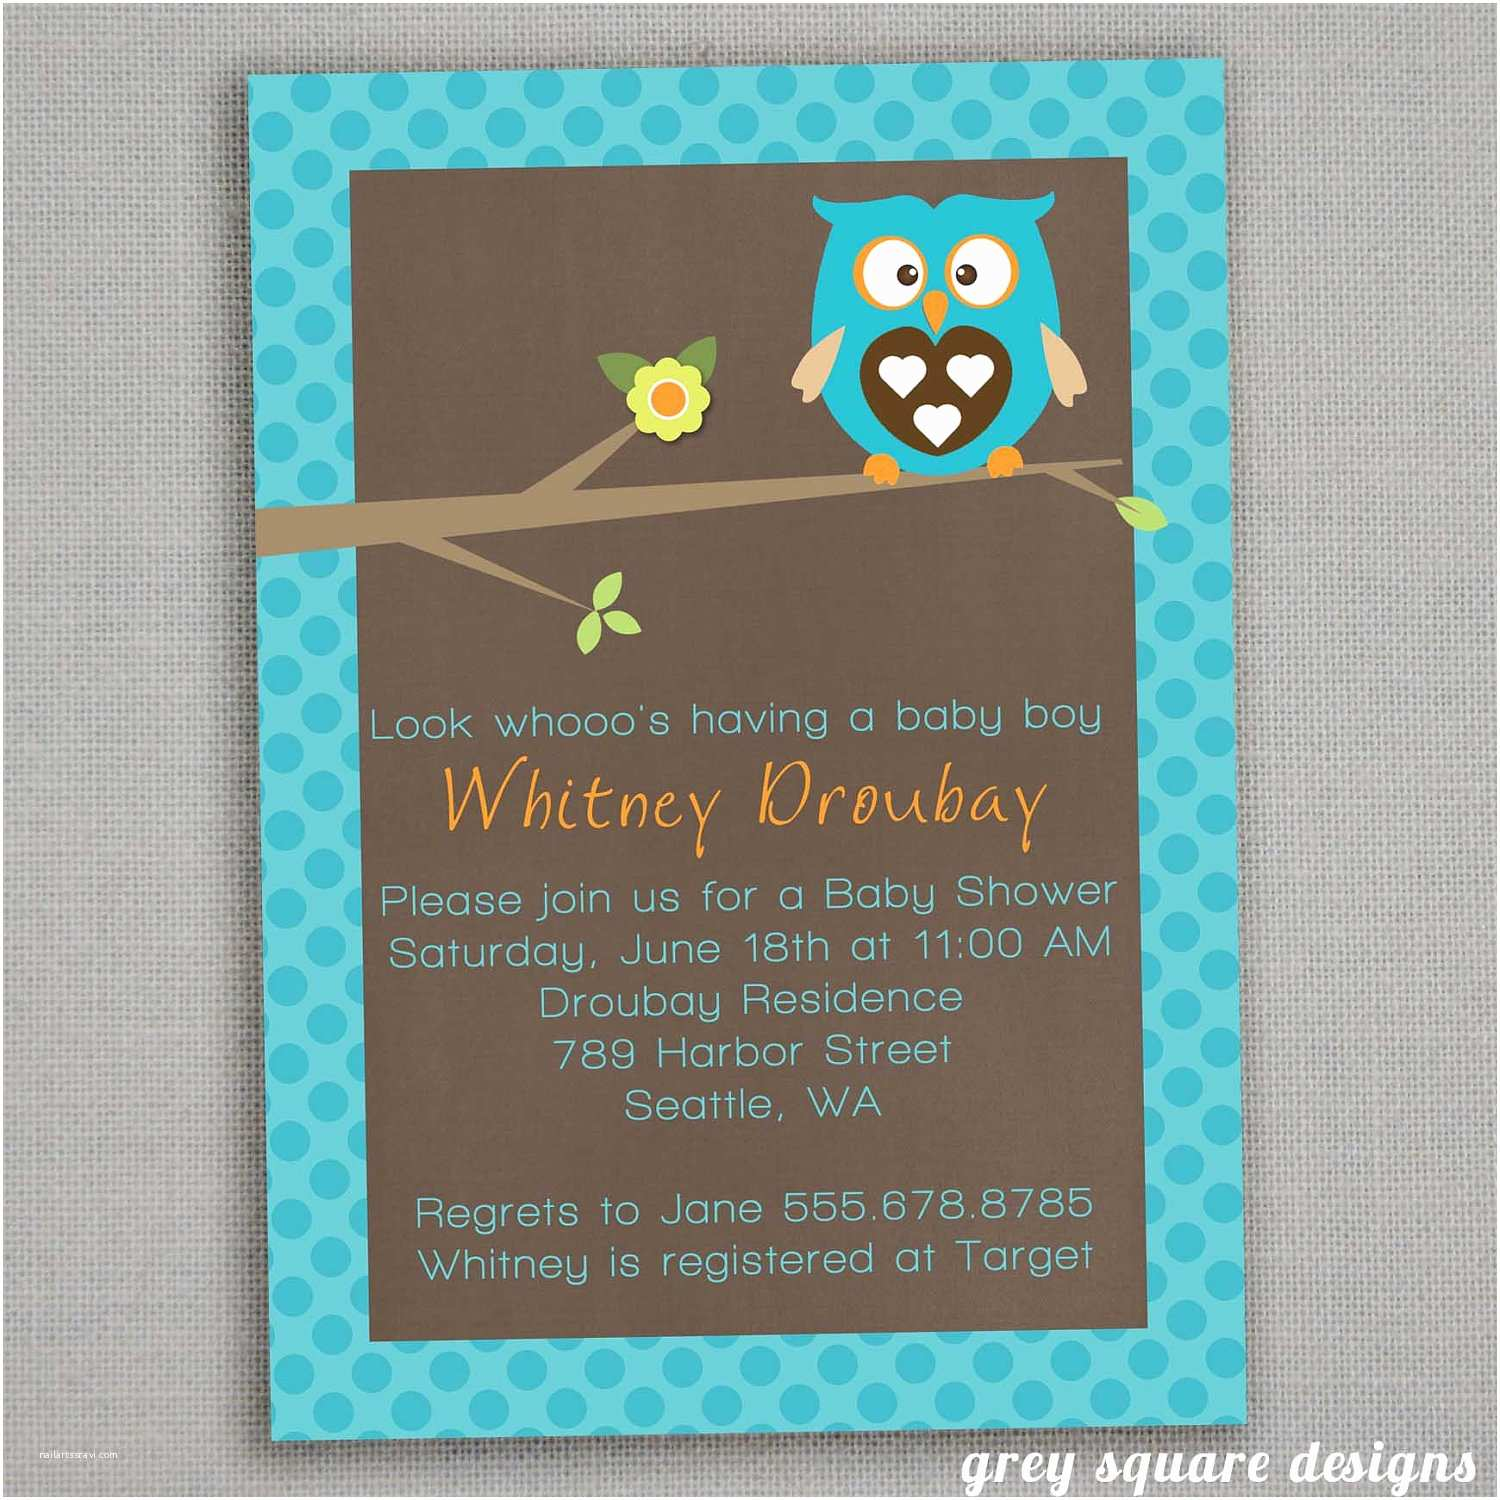 Party City Invitations for Baby Shower Party City Baby Shower Image